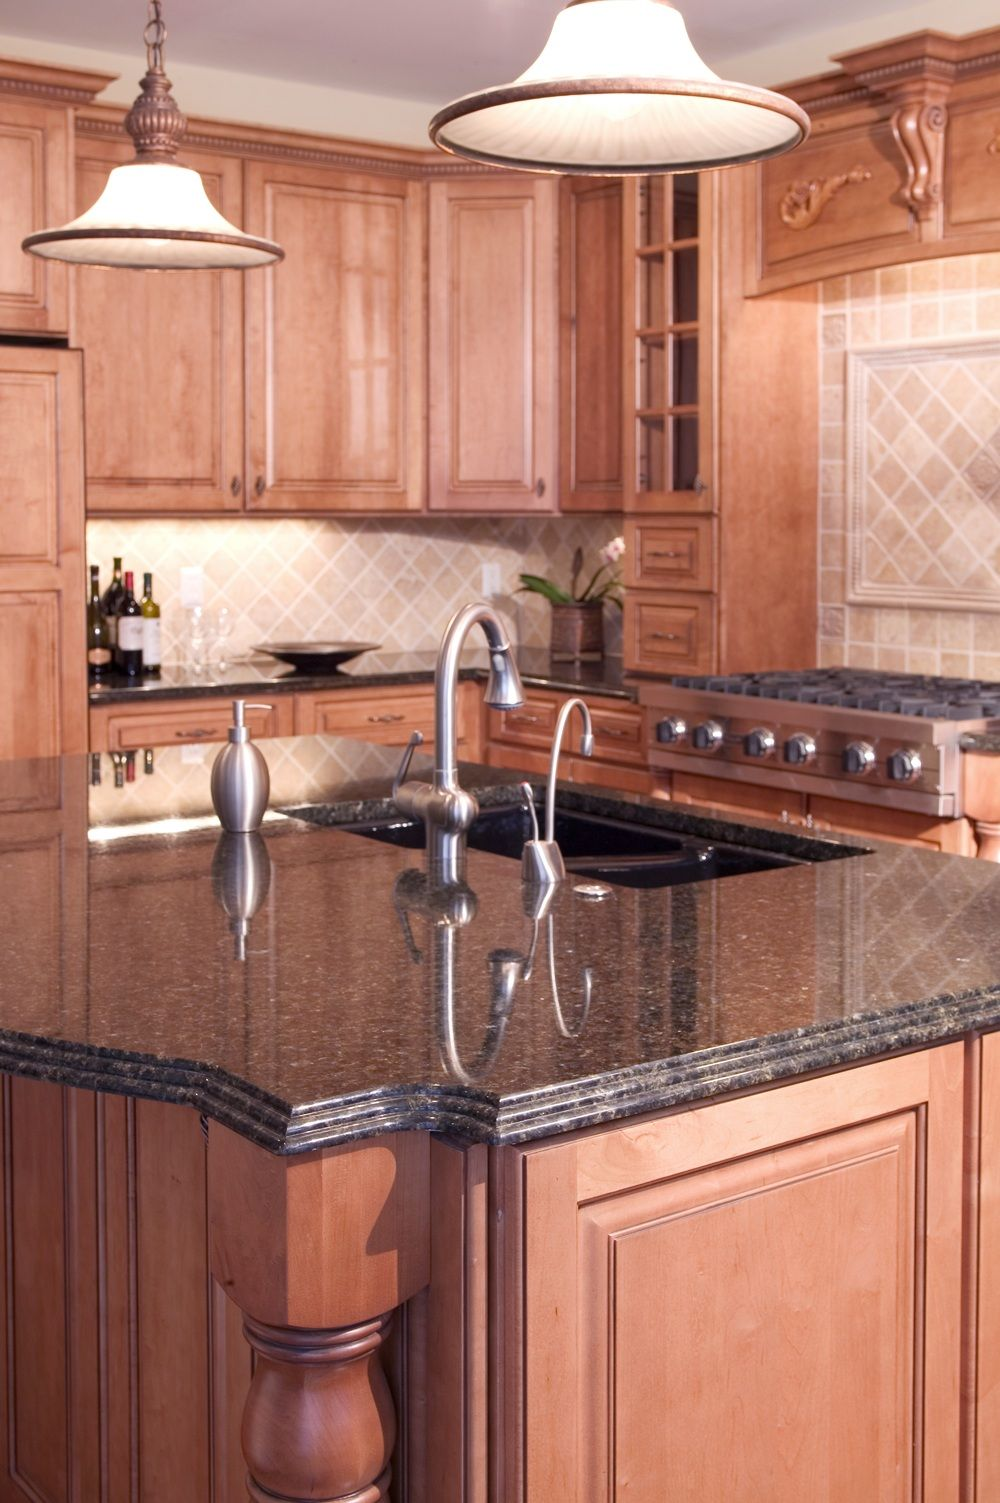 Grey Granite Countertops With Cinnamon Cherry Cabinets Tan Brown